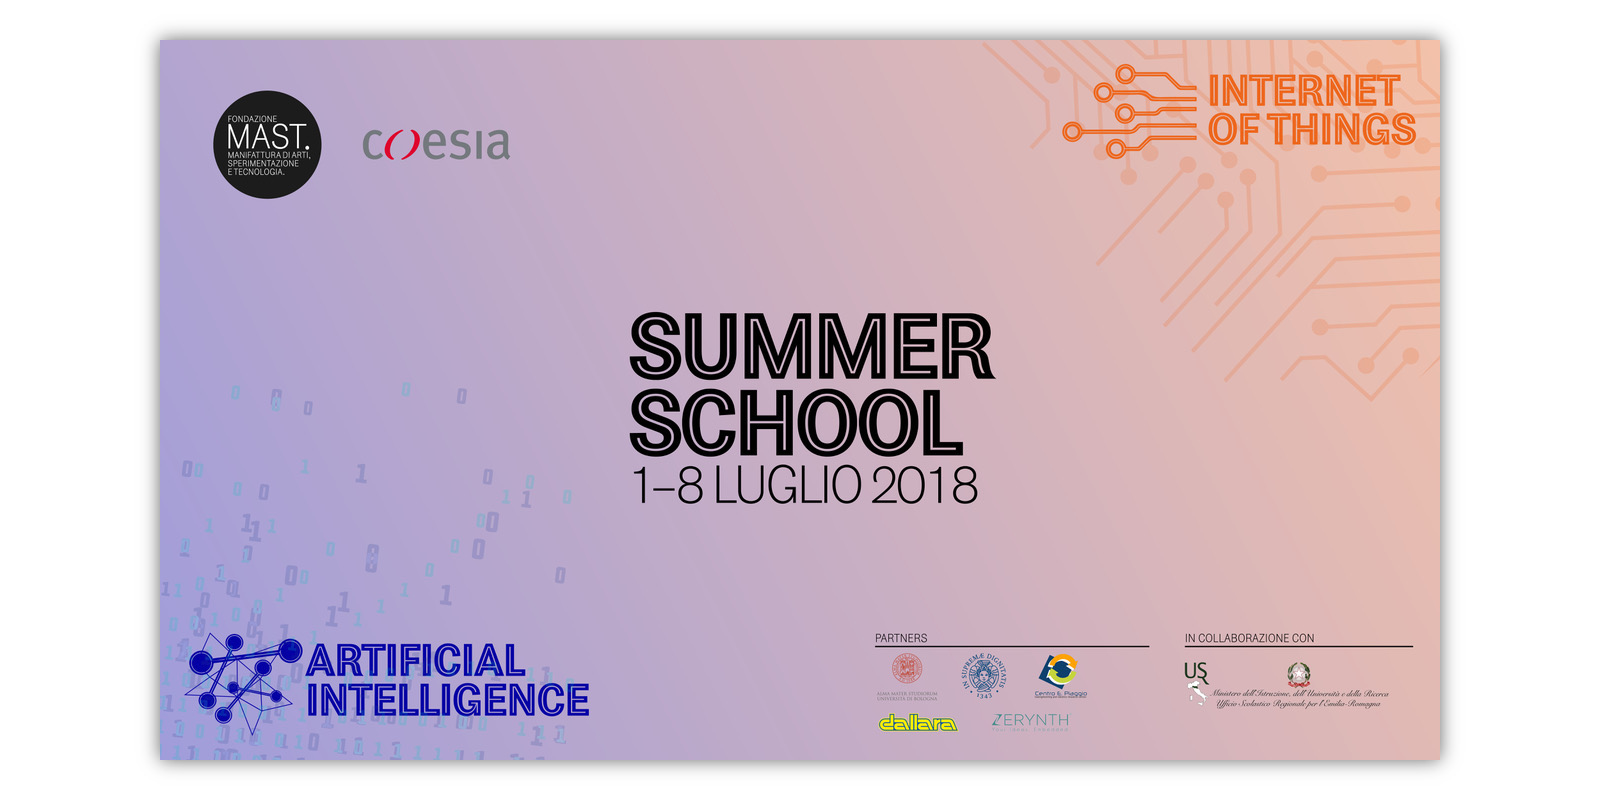 MAST Summer School 2018 with Zerynth – learning about IoT and Artificial Intelligence